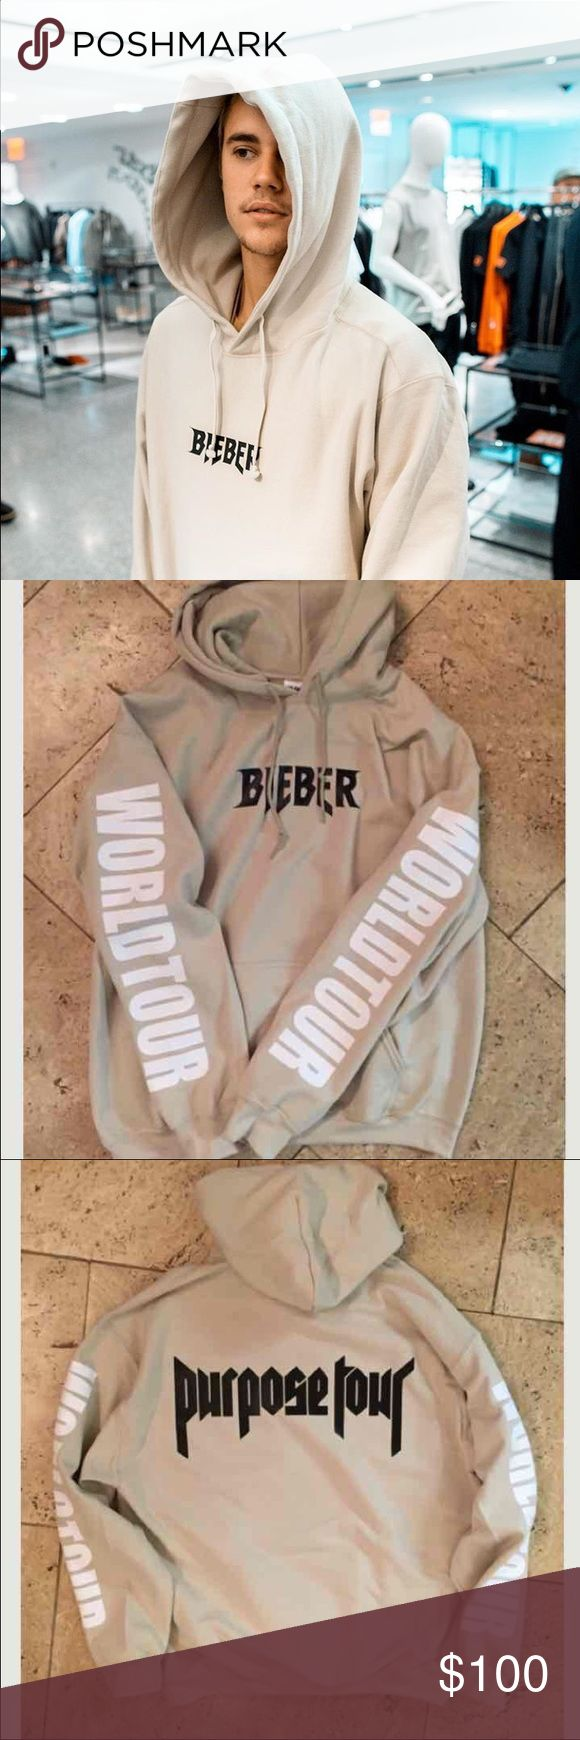 Justin Bieber Purpose Tour Hoodie Was bought at his tour on 3/25/16 for $120. Ended up not wearing it. Size M. Selling it lower on Merc Sweaters